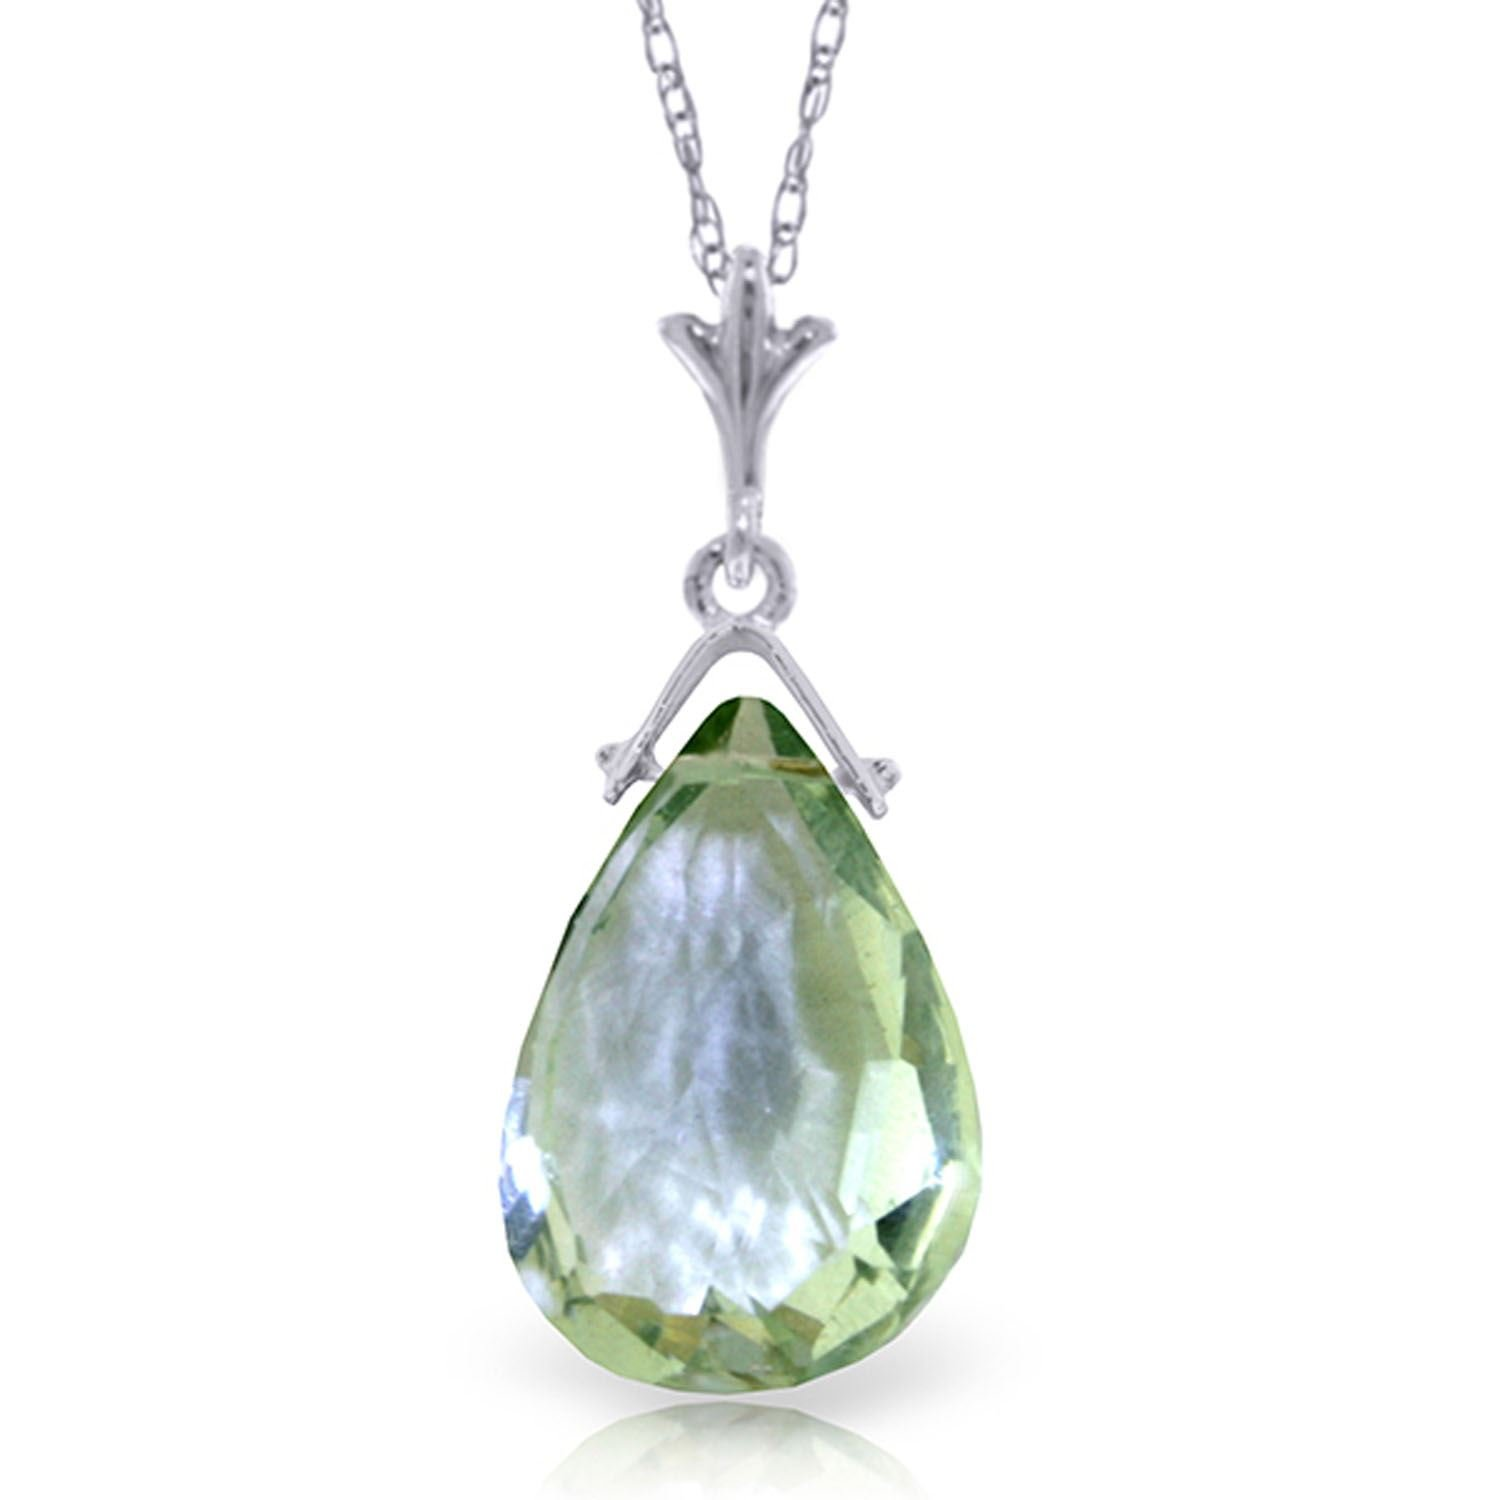 ALARRI 5.1 Carat 14K Solid White Gold Necklace Briolette Green Amethyst with 18 Inch Chain Length